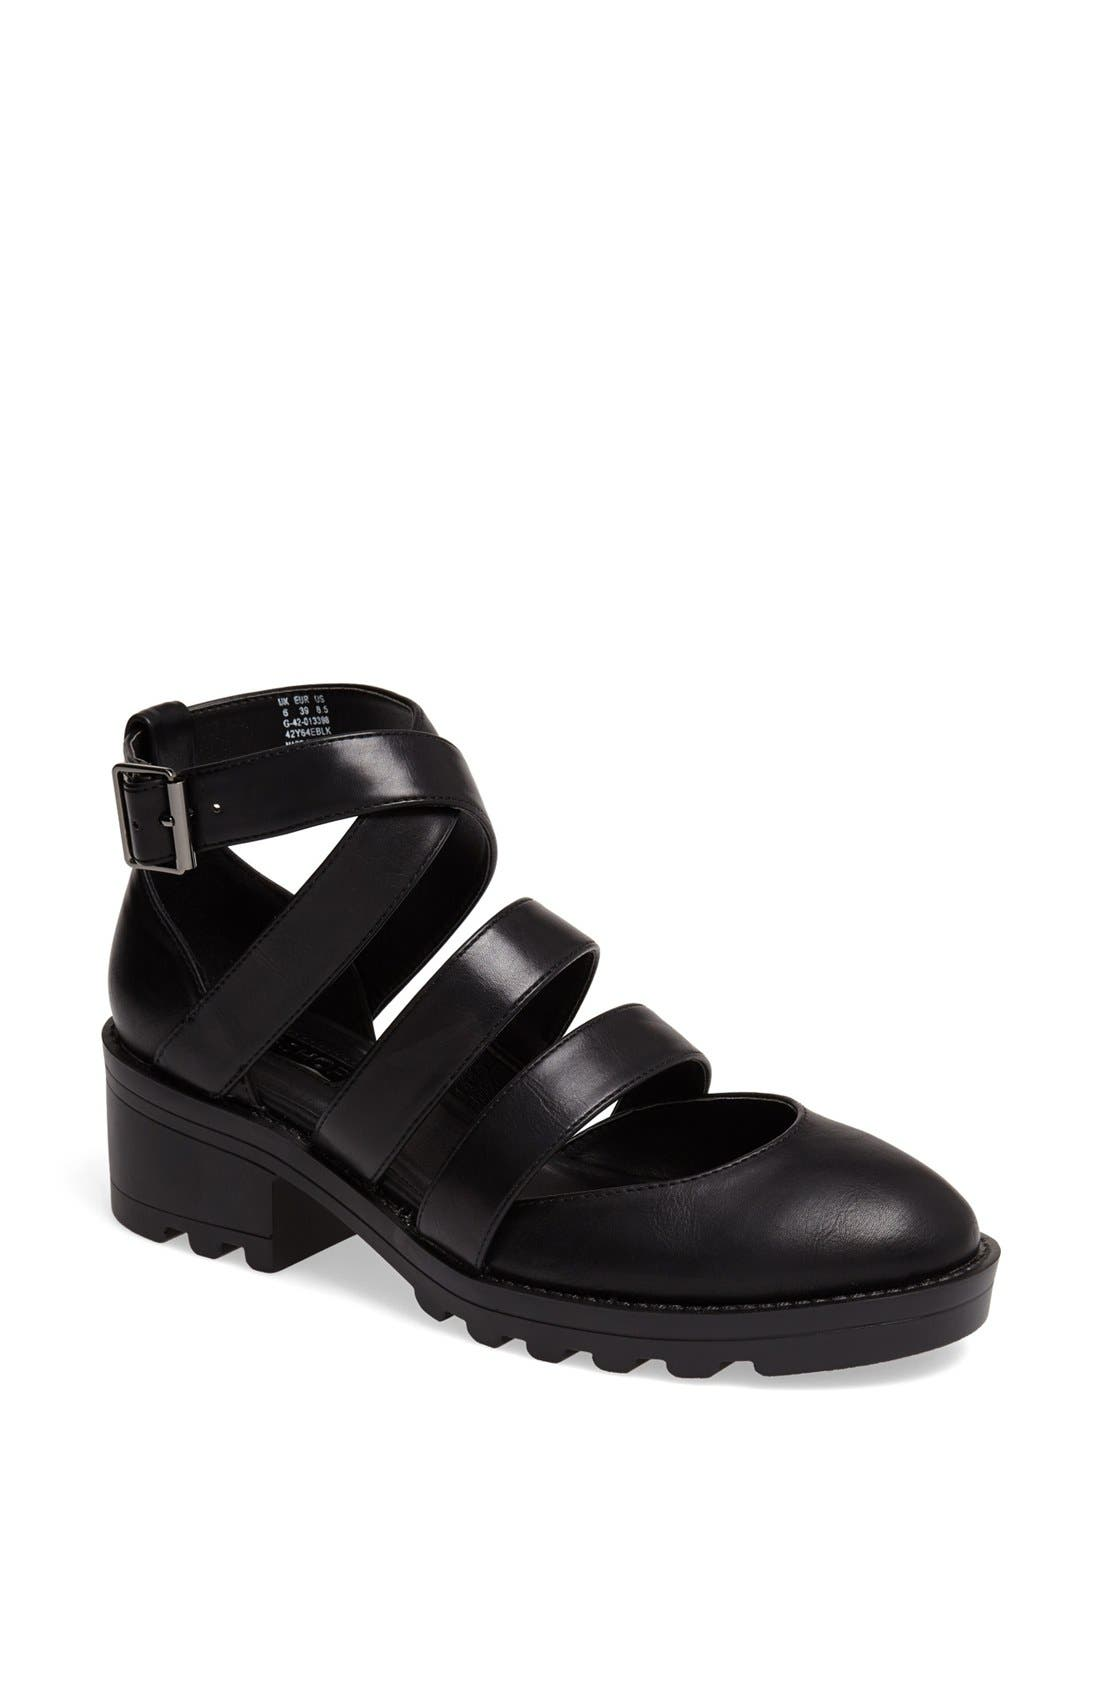 Main Image - Topshop 'Mingle' Strappy Shoe